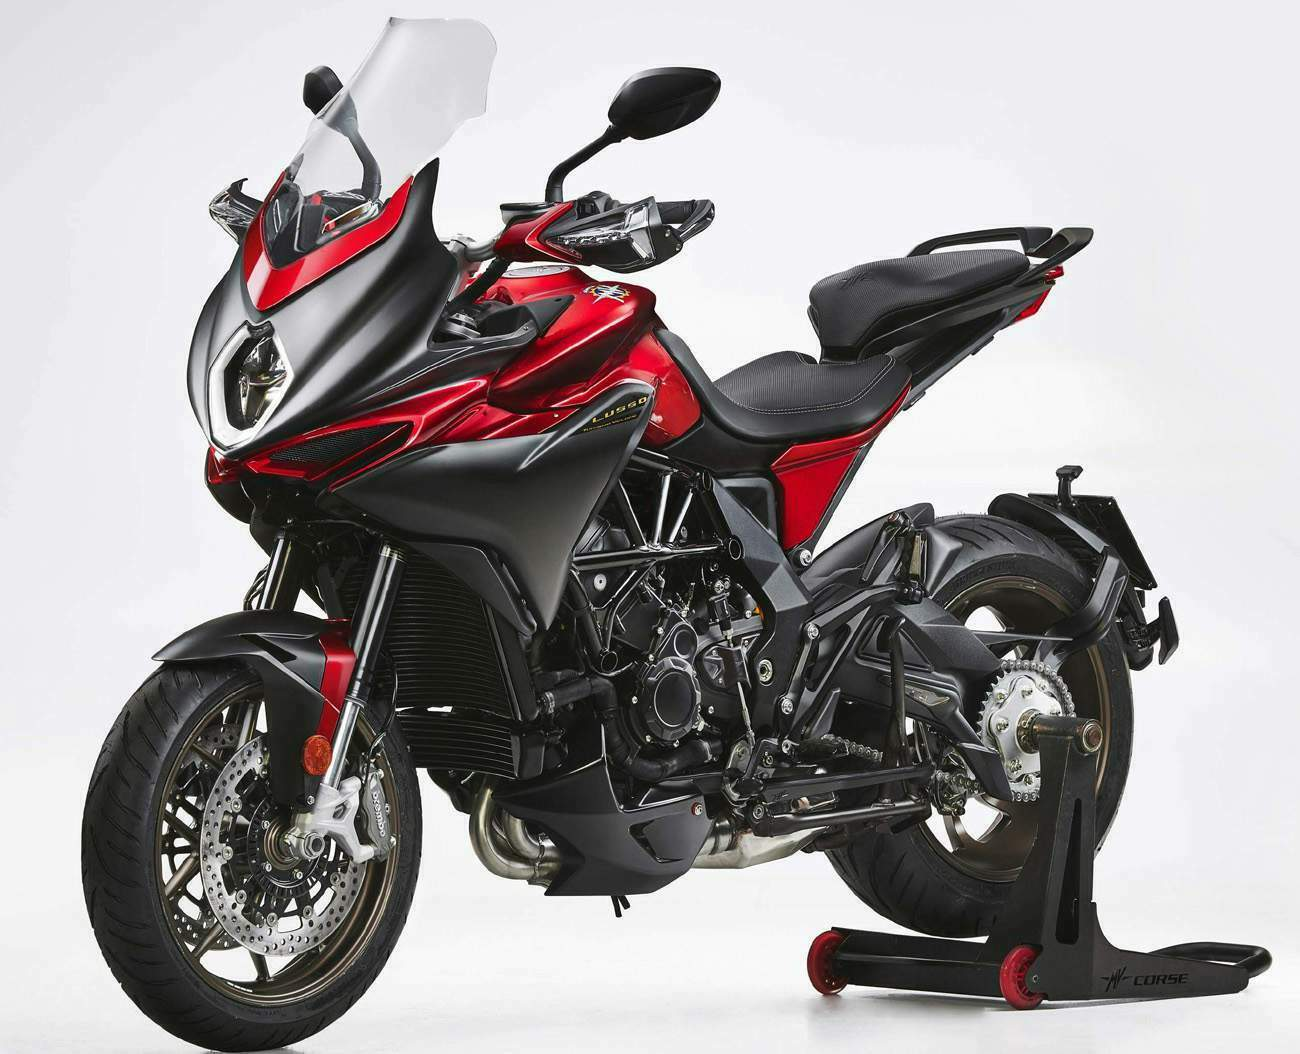 MV Agusta Turismo Veloce 800 Lusso technical specifications